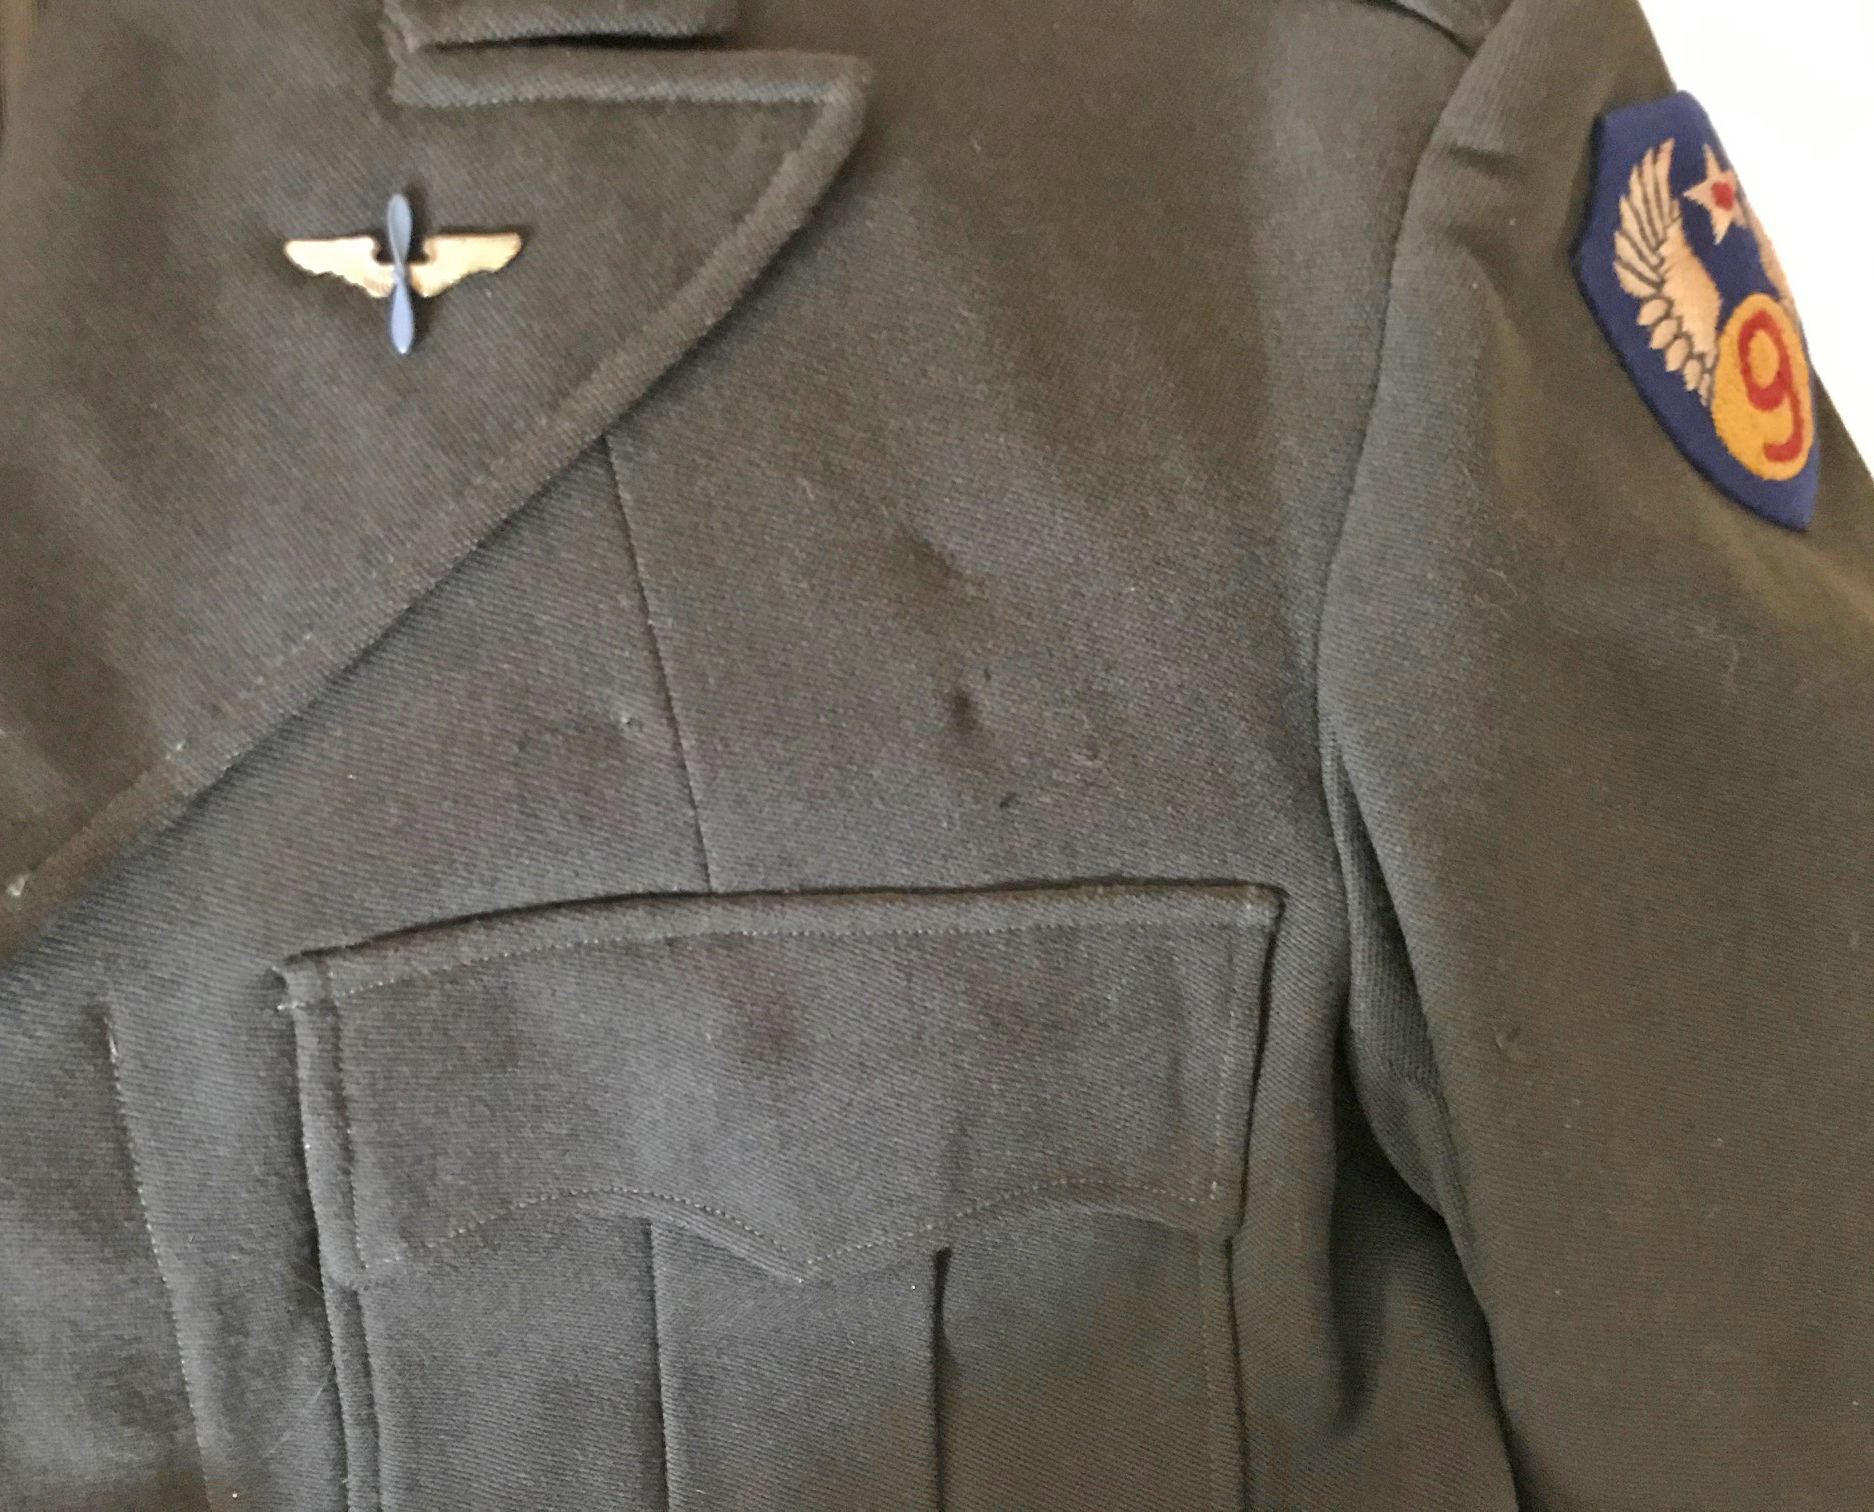 AAF English made Ike jacket 9th Air Force